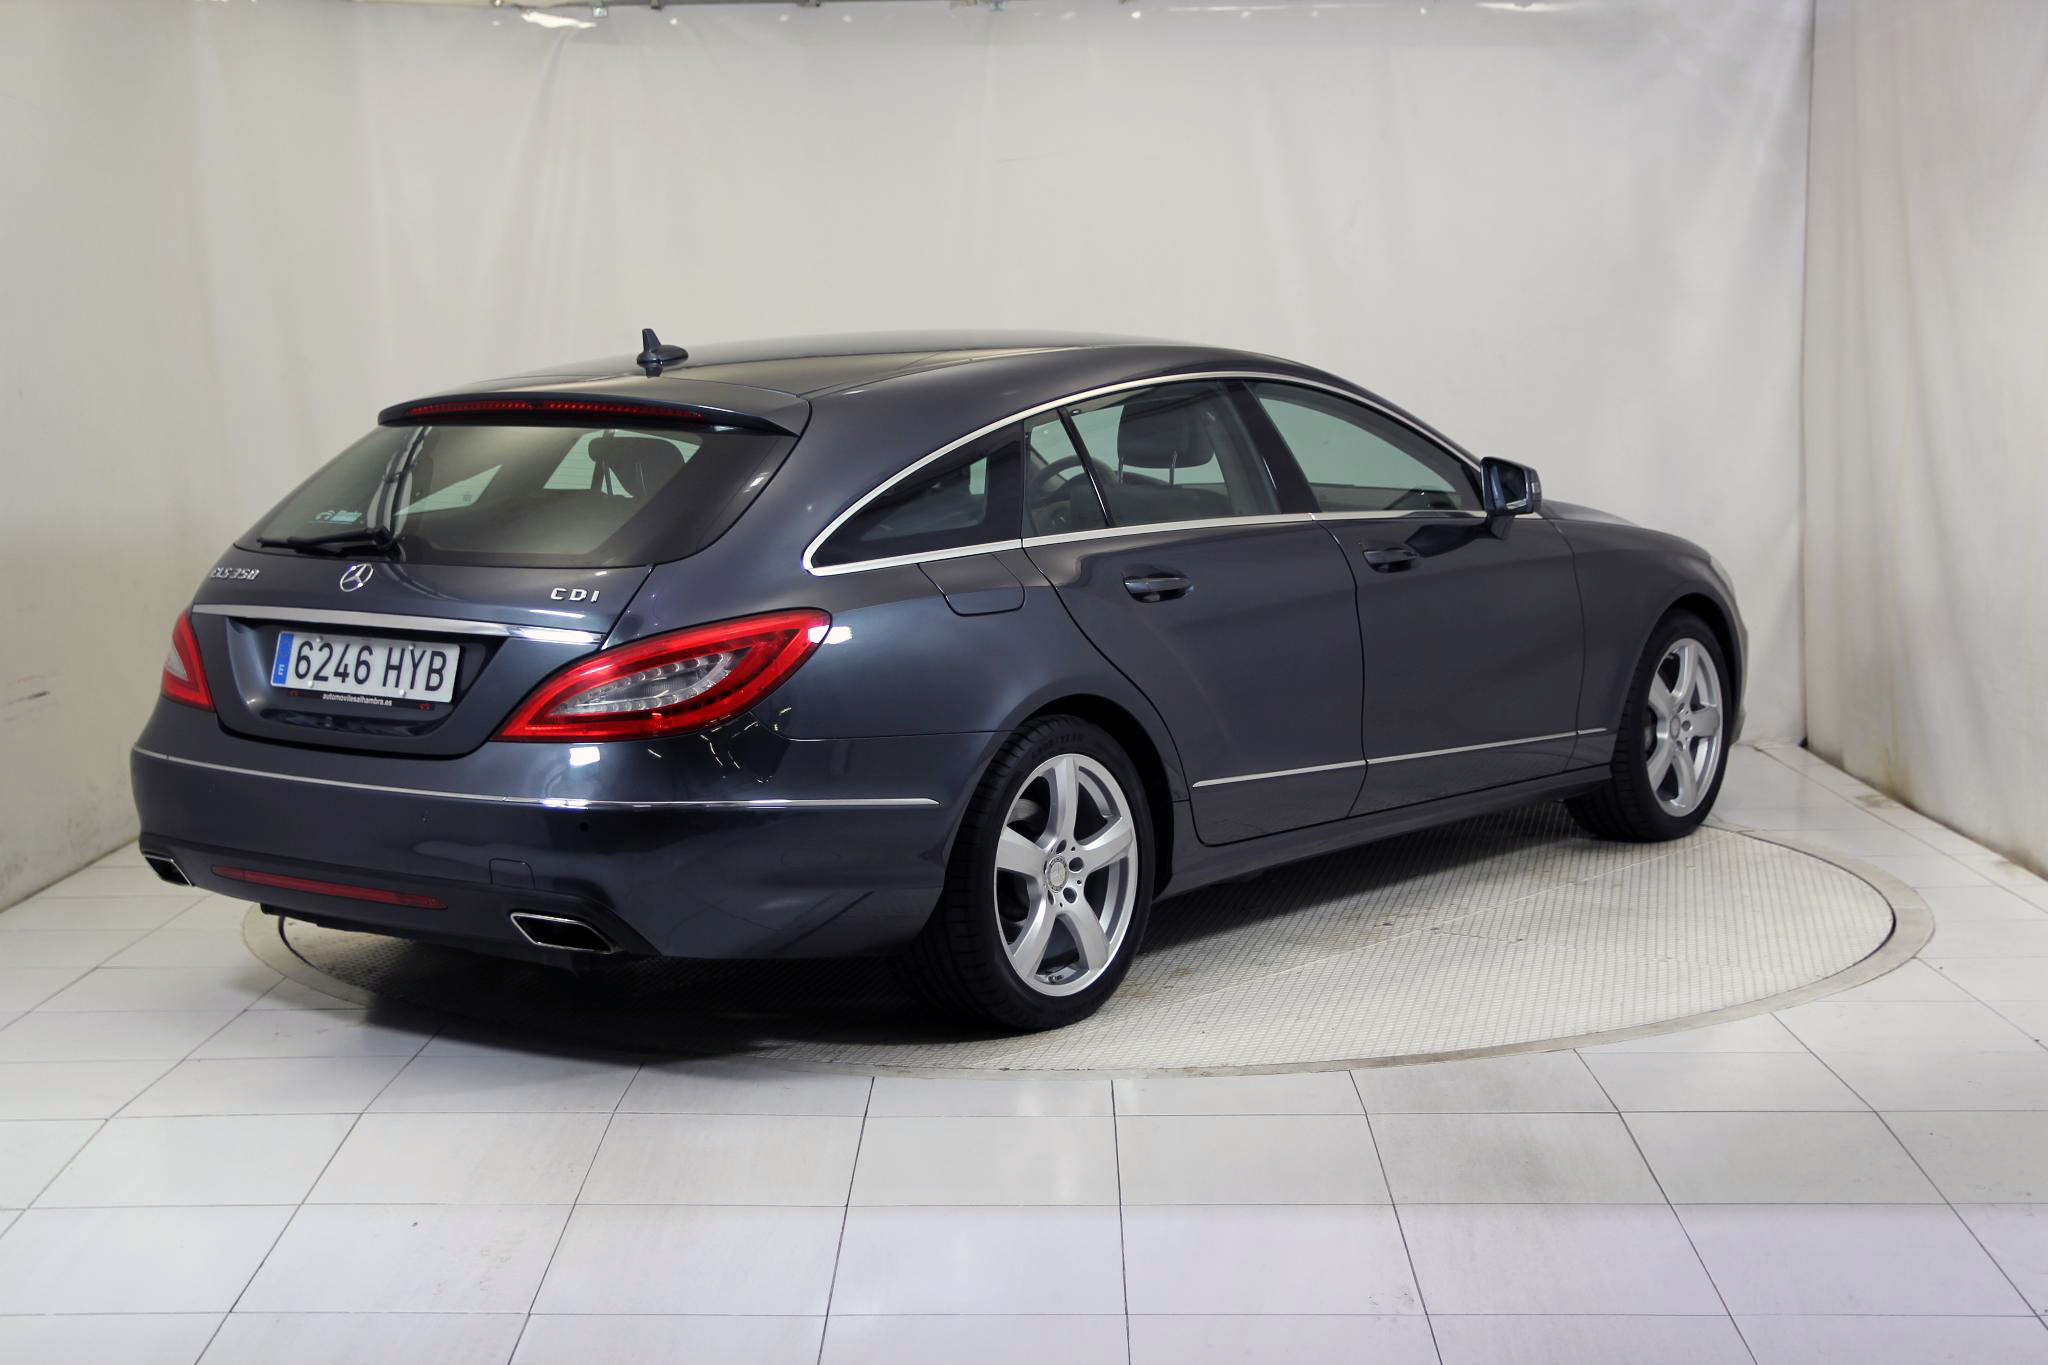 Mercedes-Benz Clase CLS CLS SHOOTING BRAKE 350 CDI AUTO imagen 6